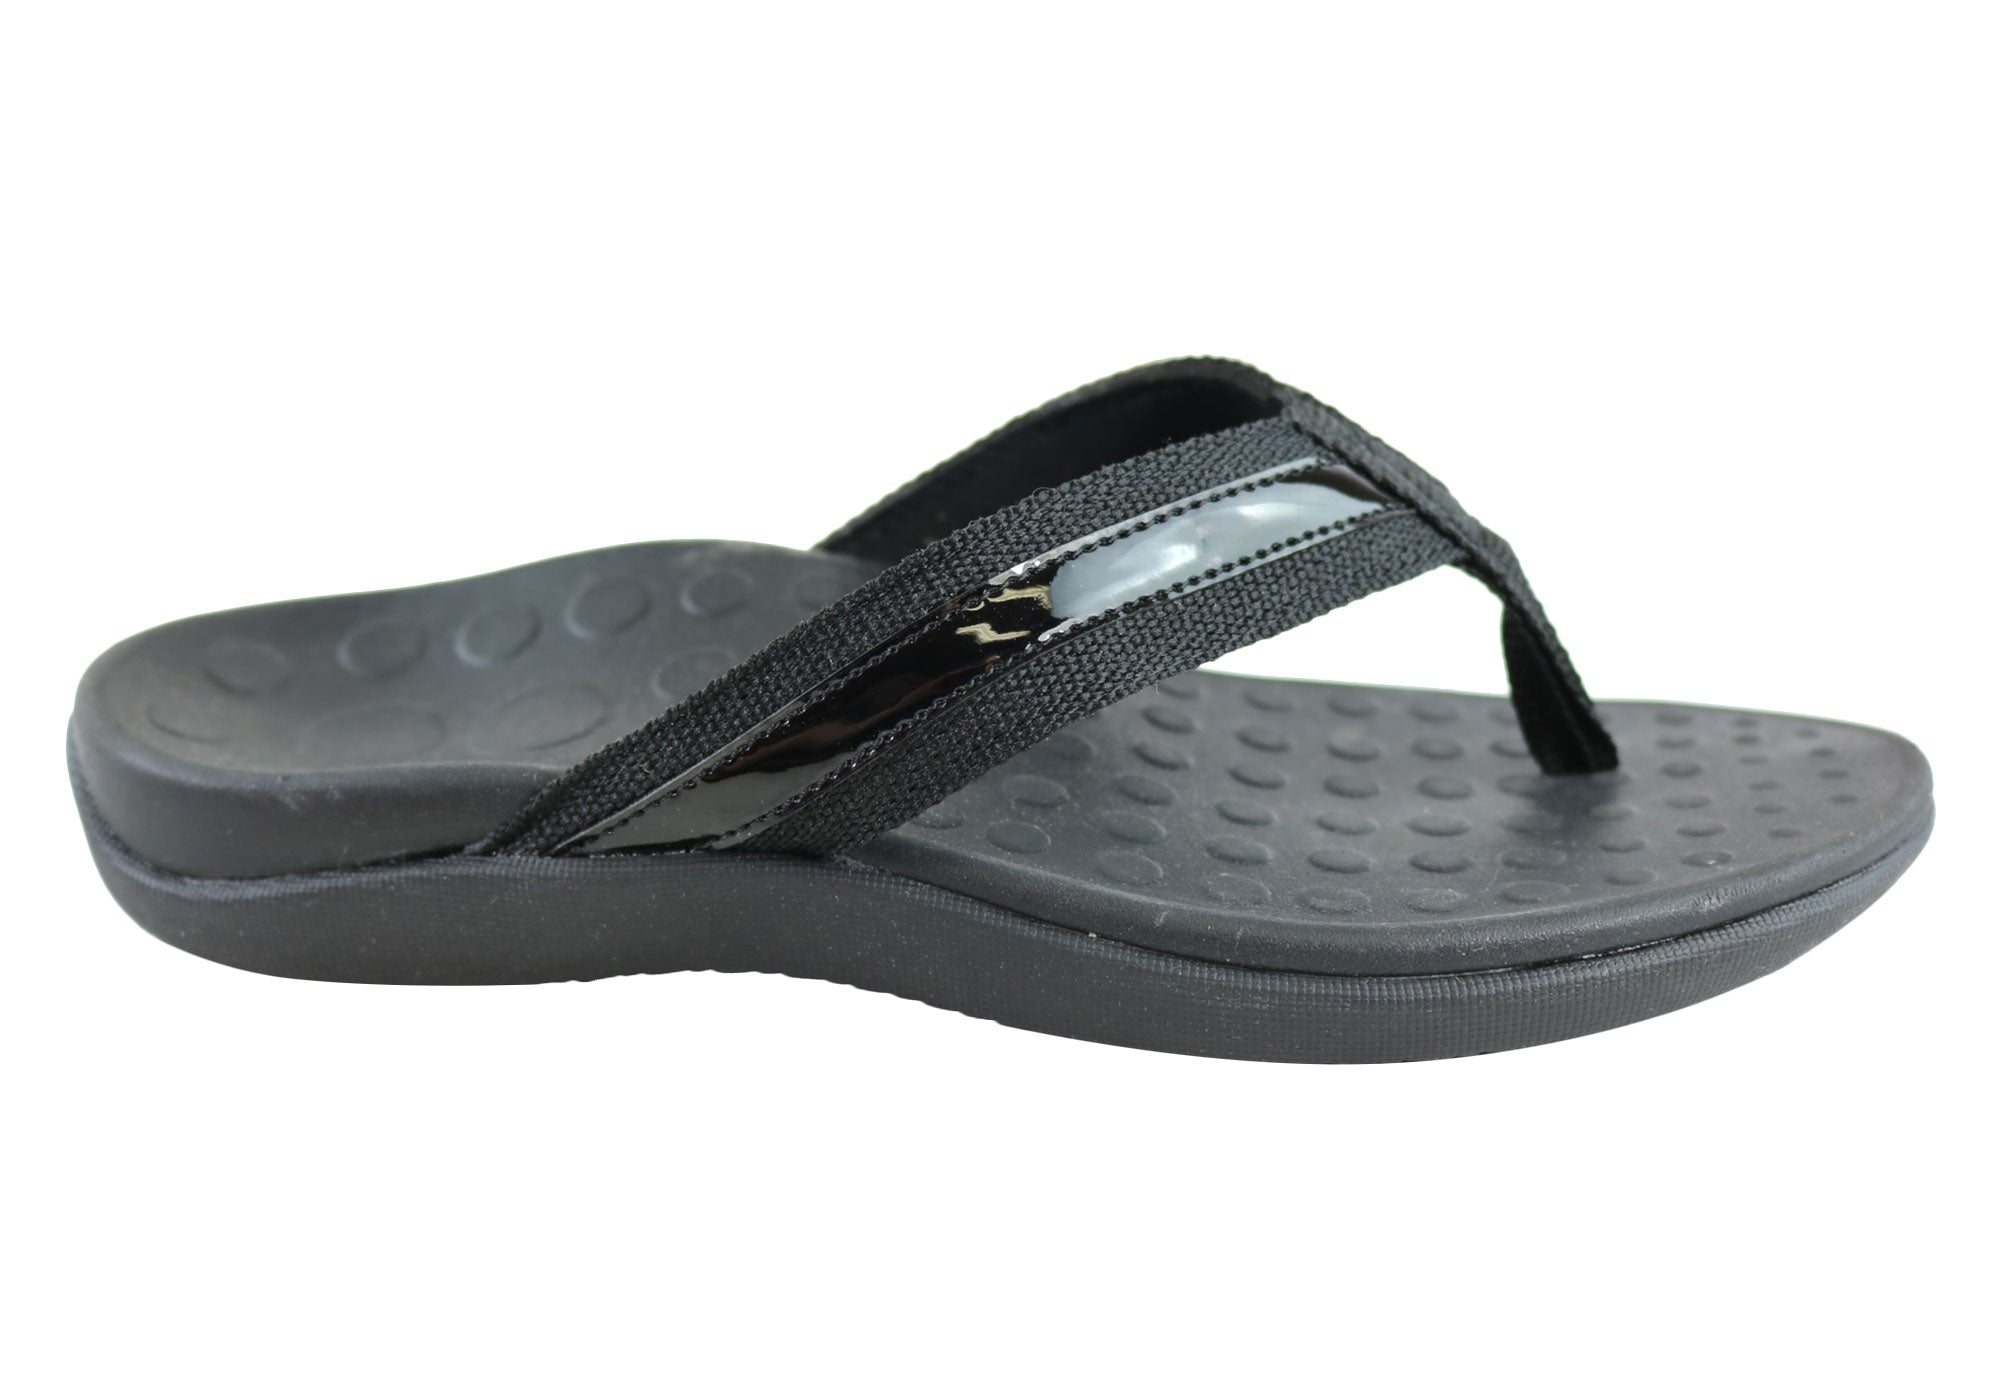 749e29a01f6f Home Scholl Orthaheel Tide II Womens Comfort Orthotic Flip Flop Sandals.  Black · Natural White ...